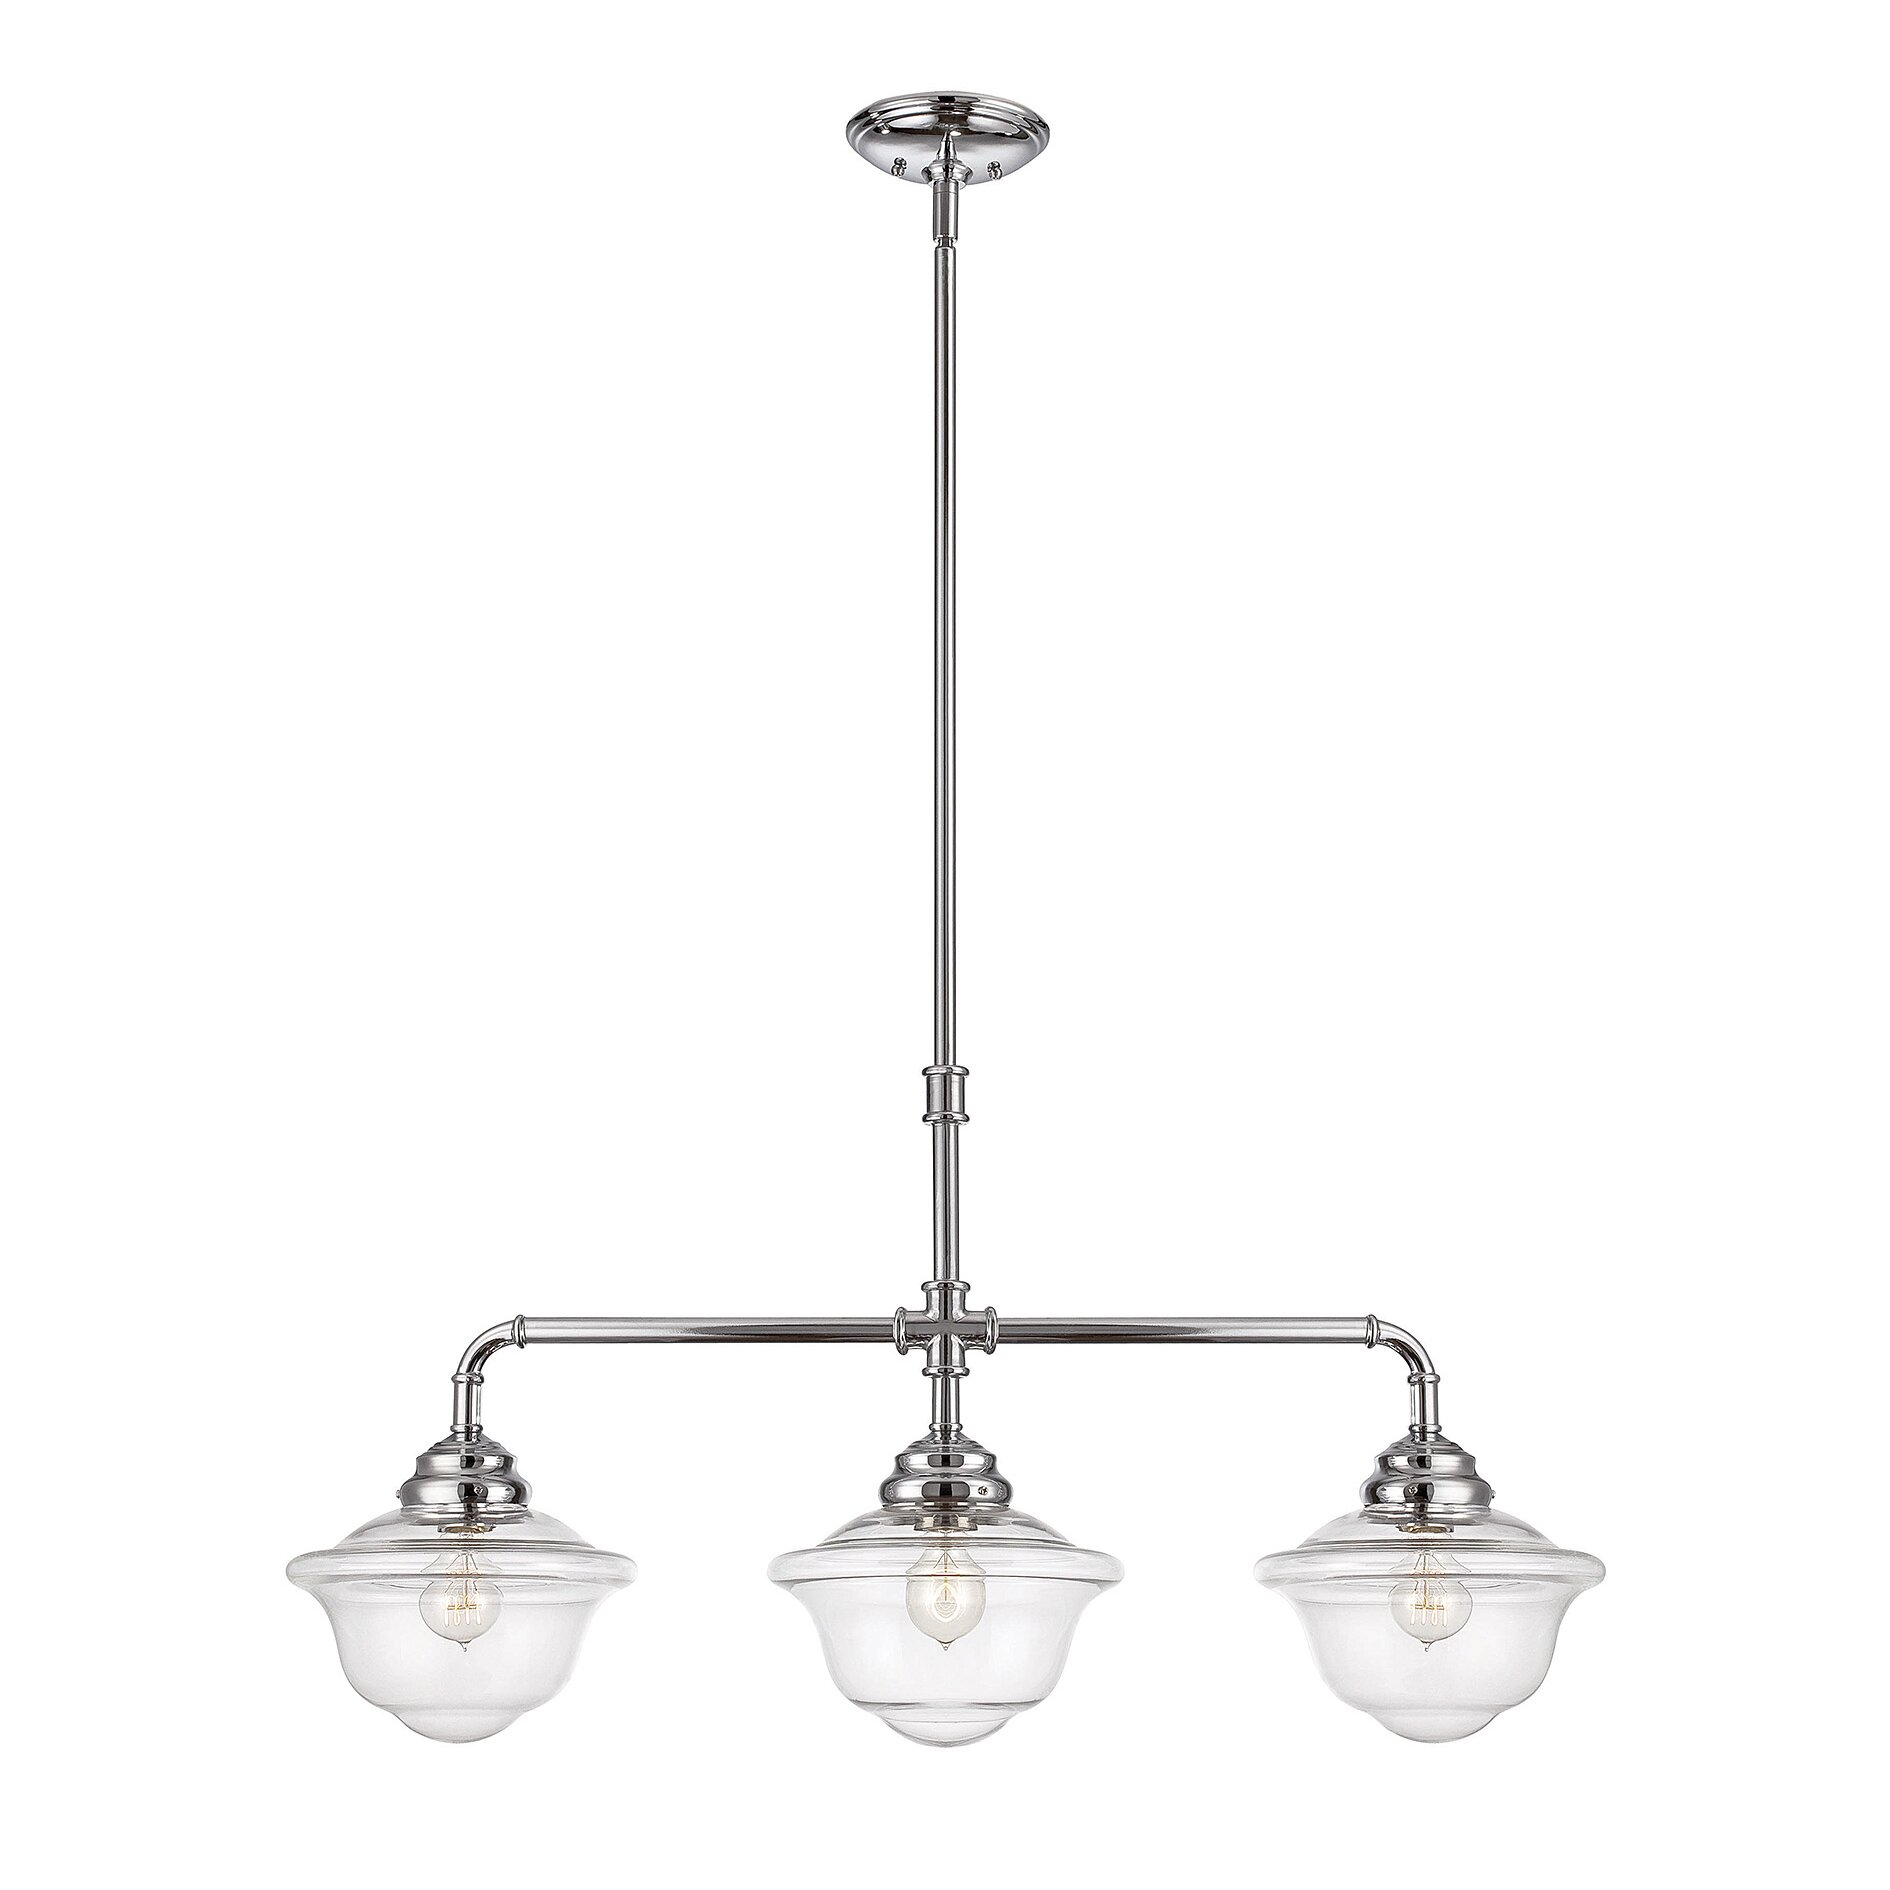 Kitchen Island Pendant Lighting: Trent Austin Design Davis 3 Light Kitchen Island Pendant